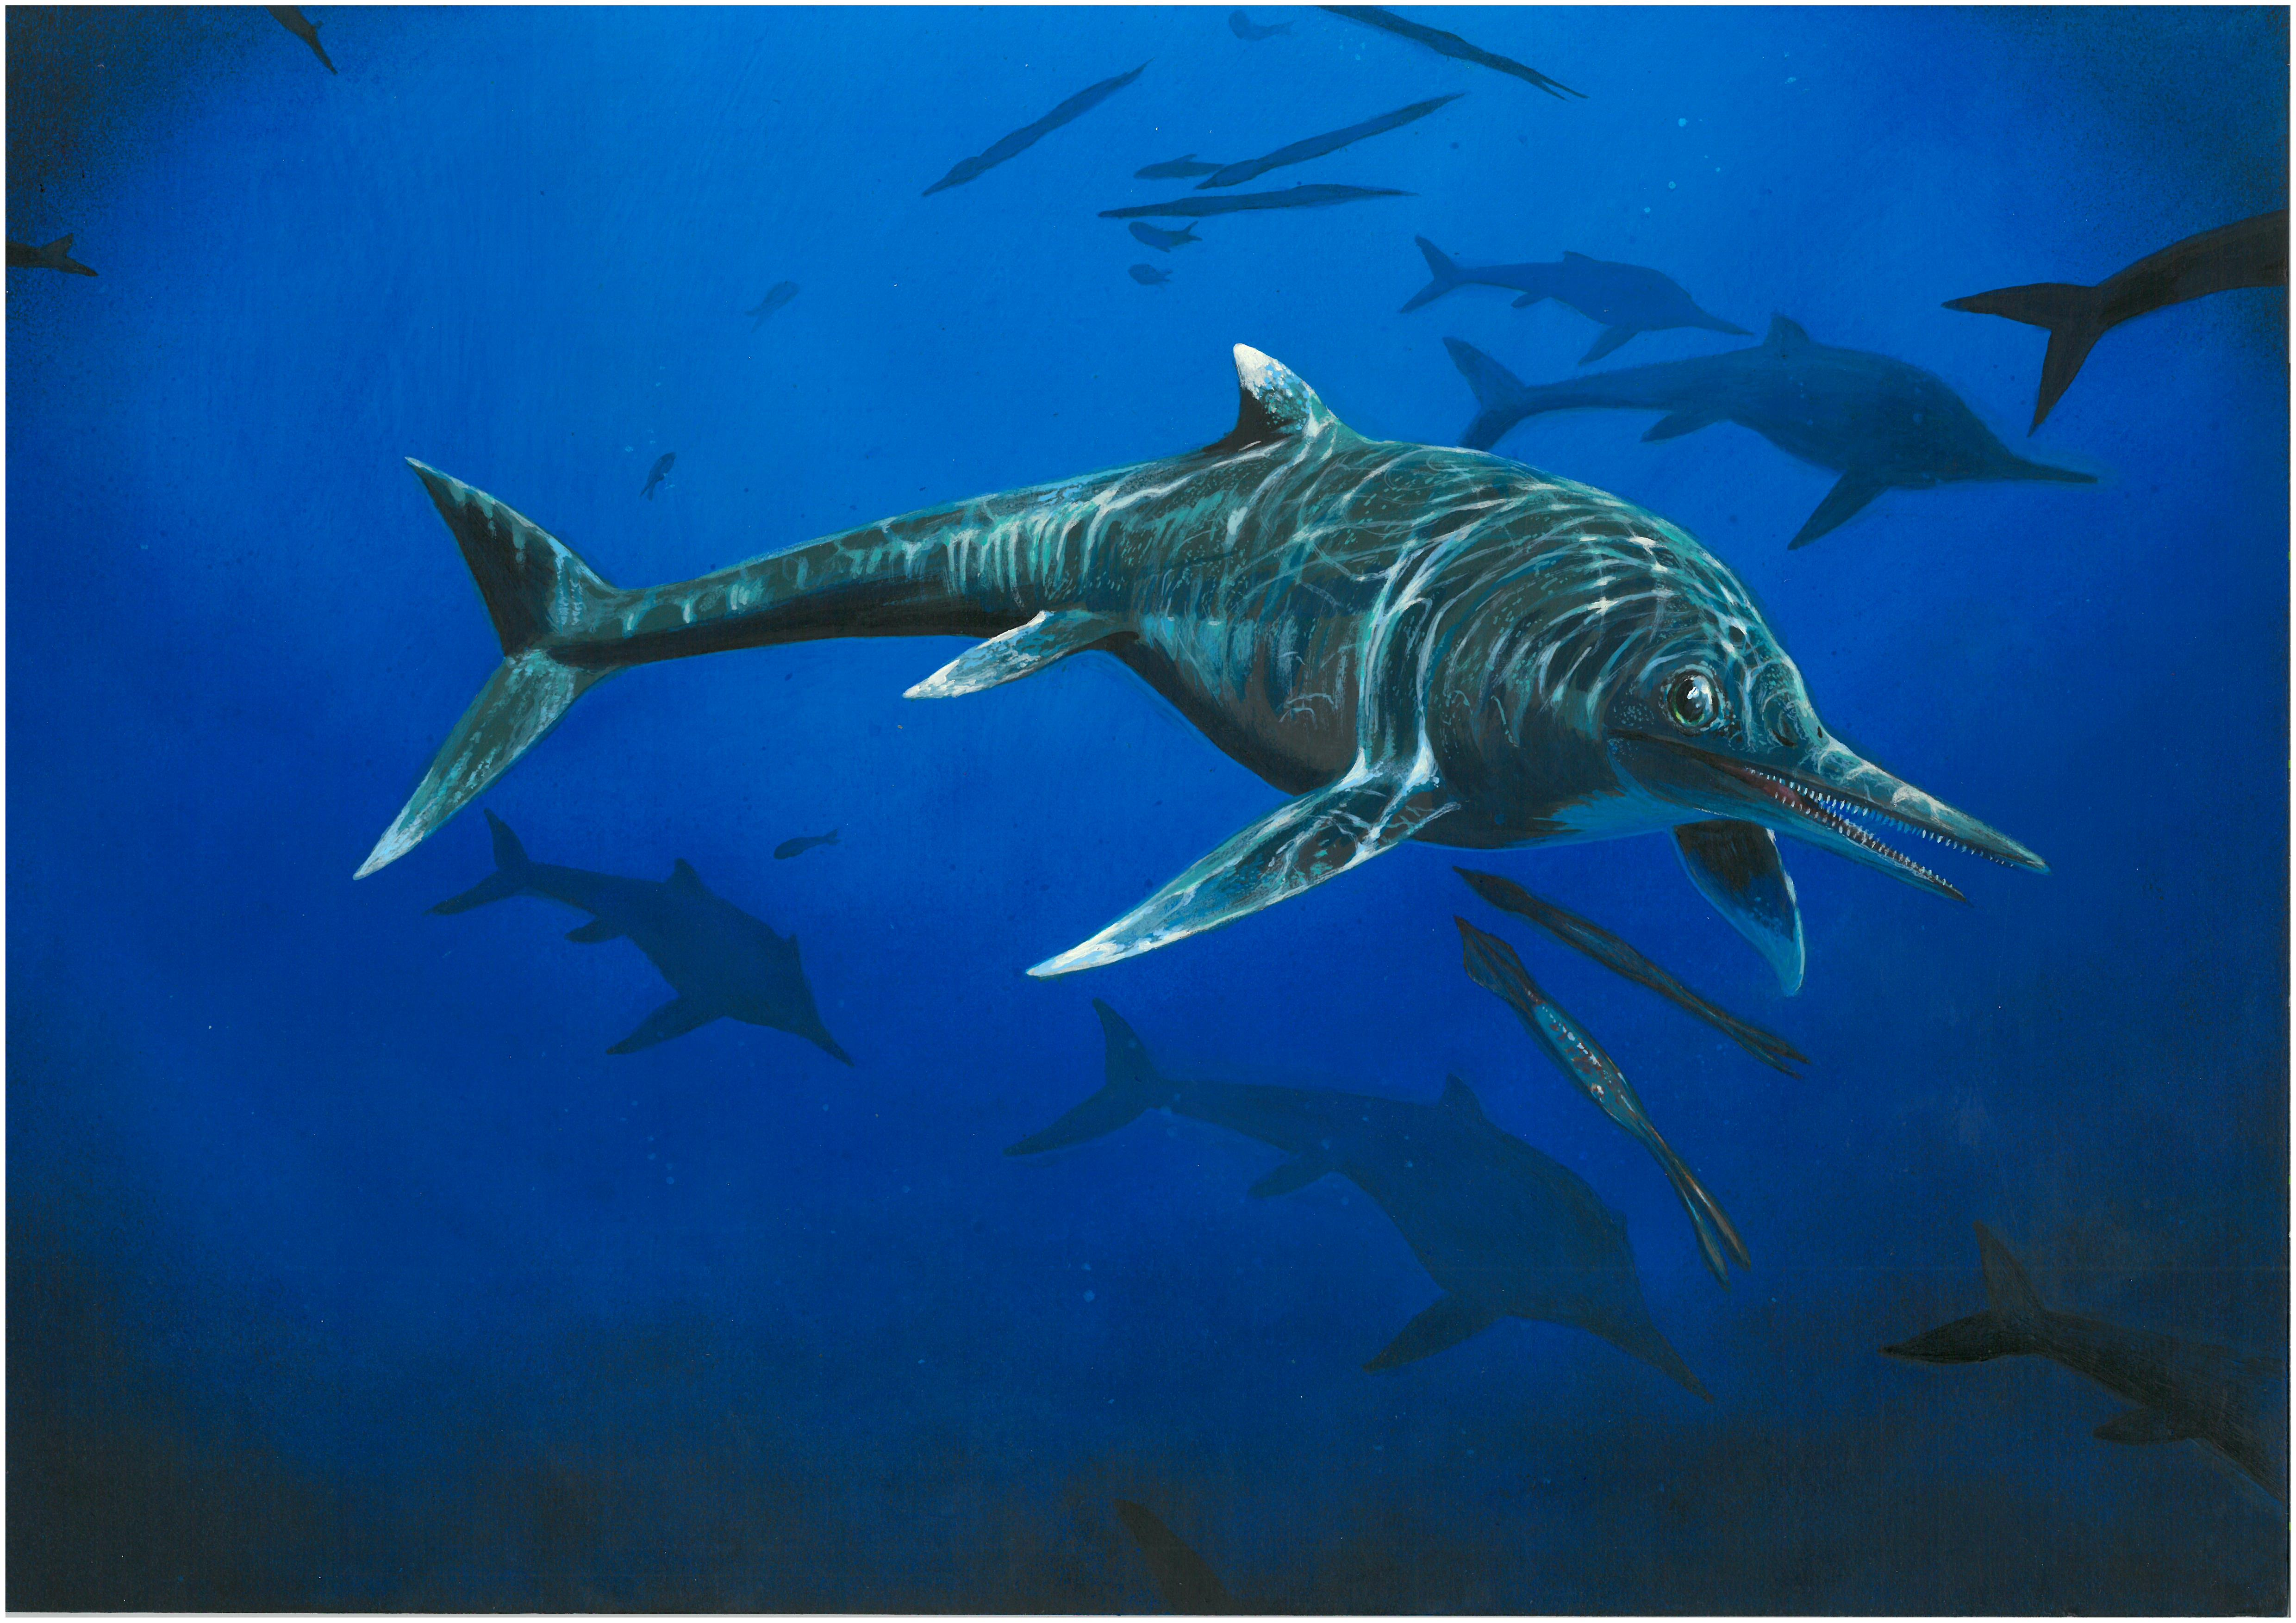 Scientists have identified the remains of a rare 200 million-year-old ichthyosaur sea reptile 22 years after it was first uncovered.